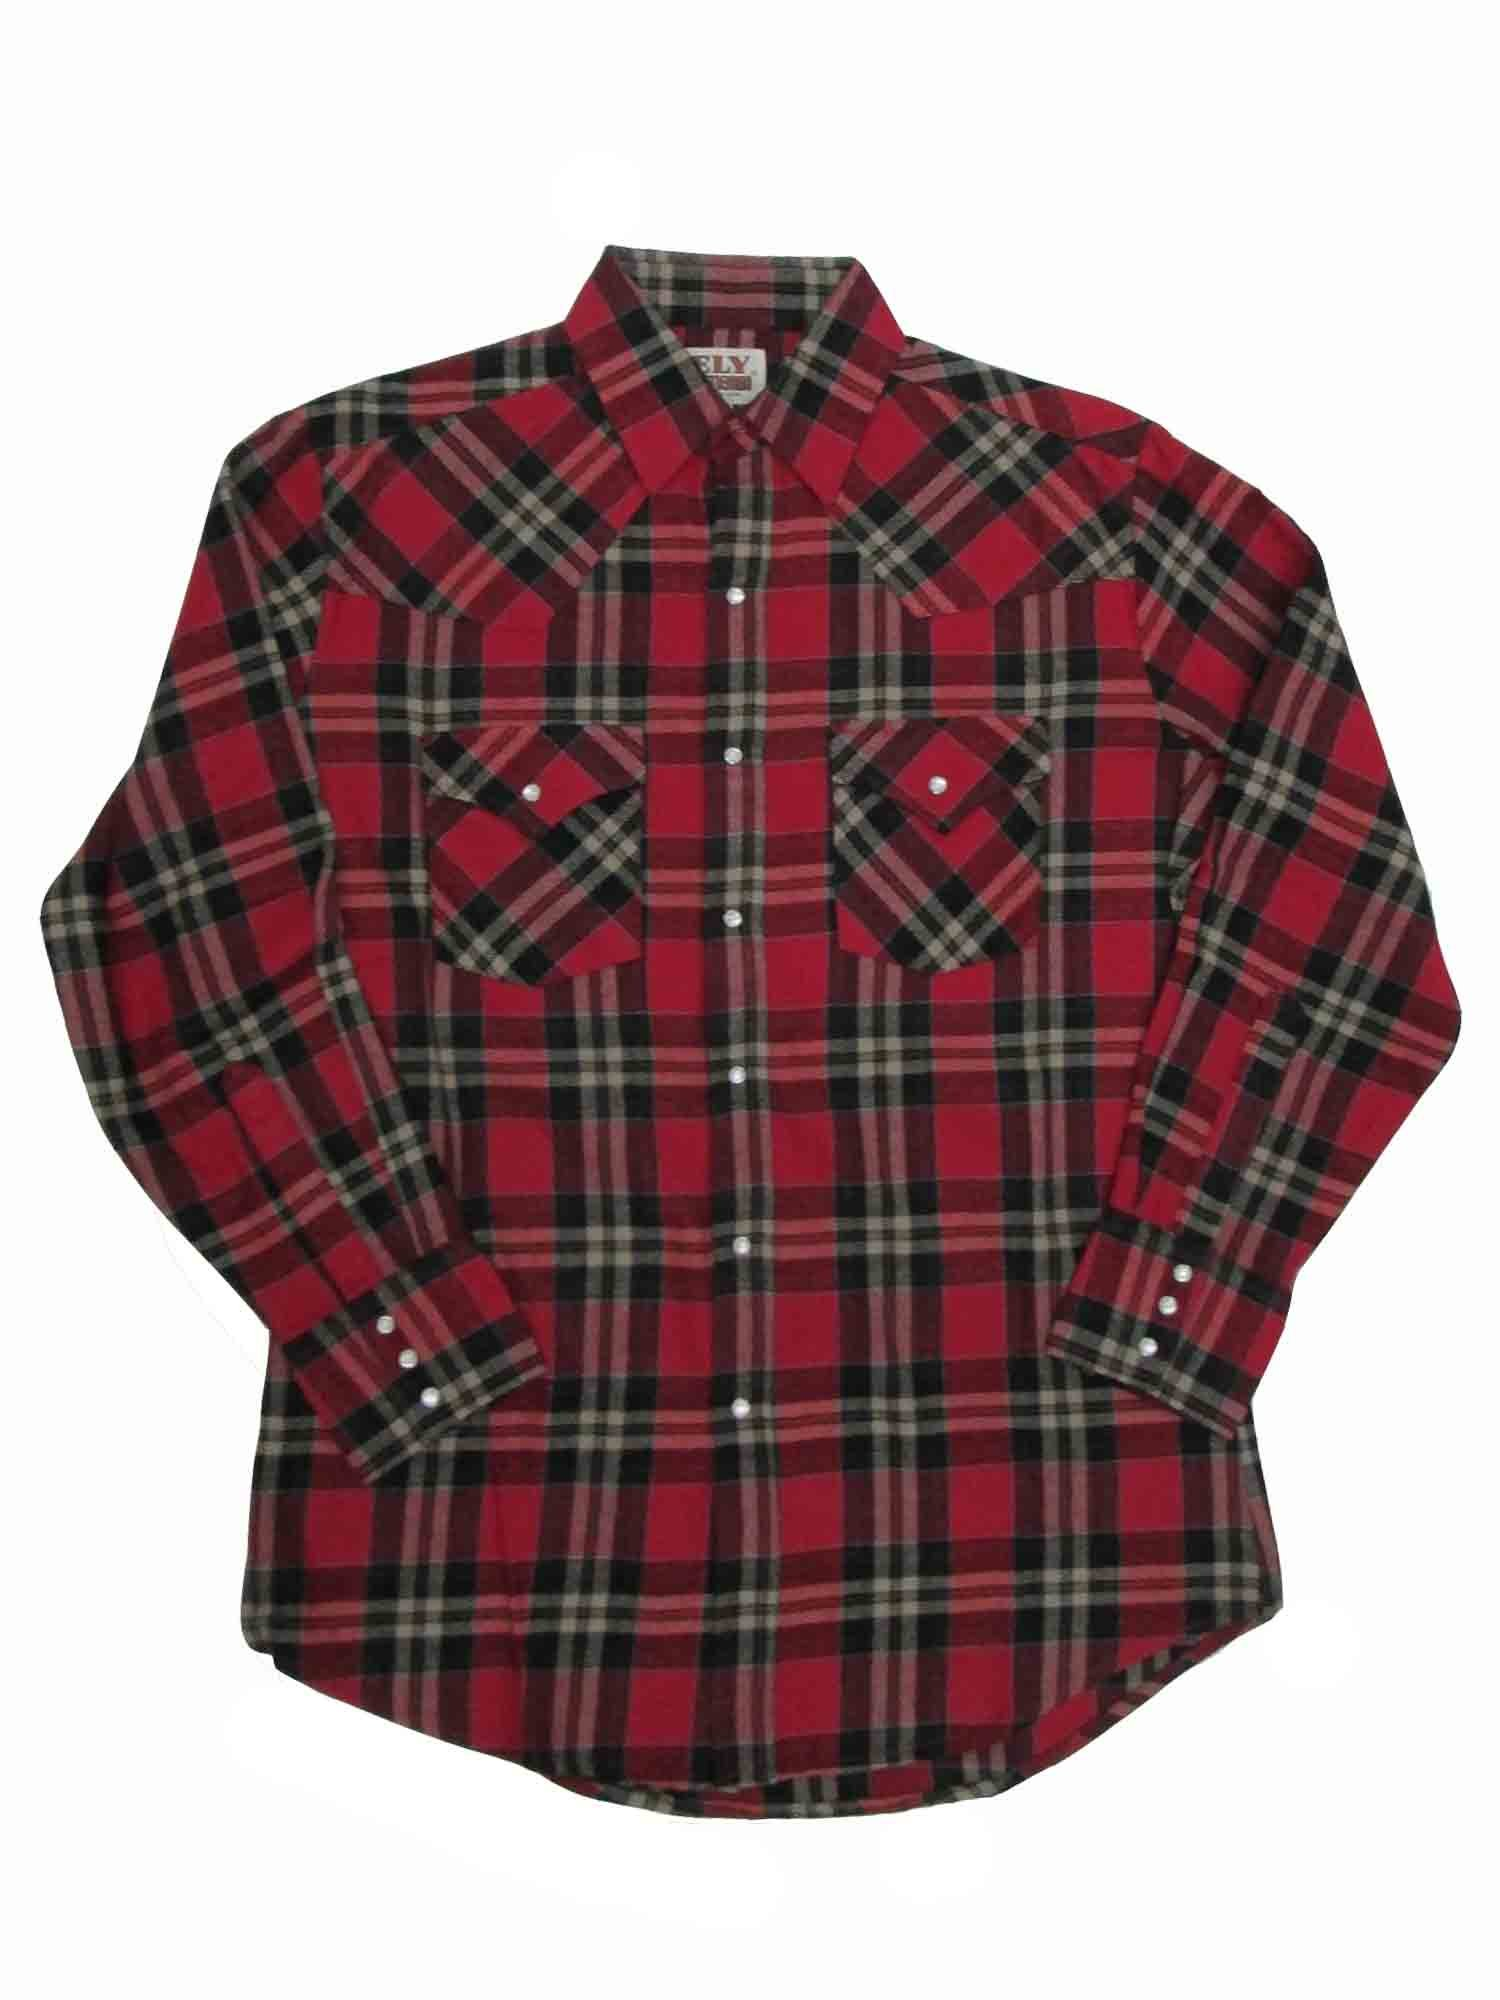 Ely Cattleman Tall Mens Western Brawny Heavy Duty Flannel Plaid 4-Shirt Bundle Pack by ELY CATTLEMAN